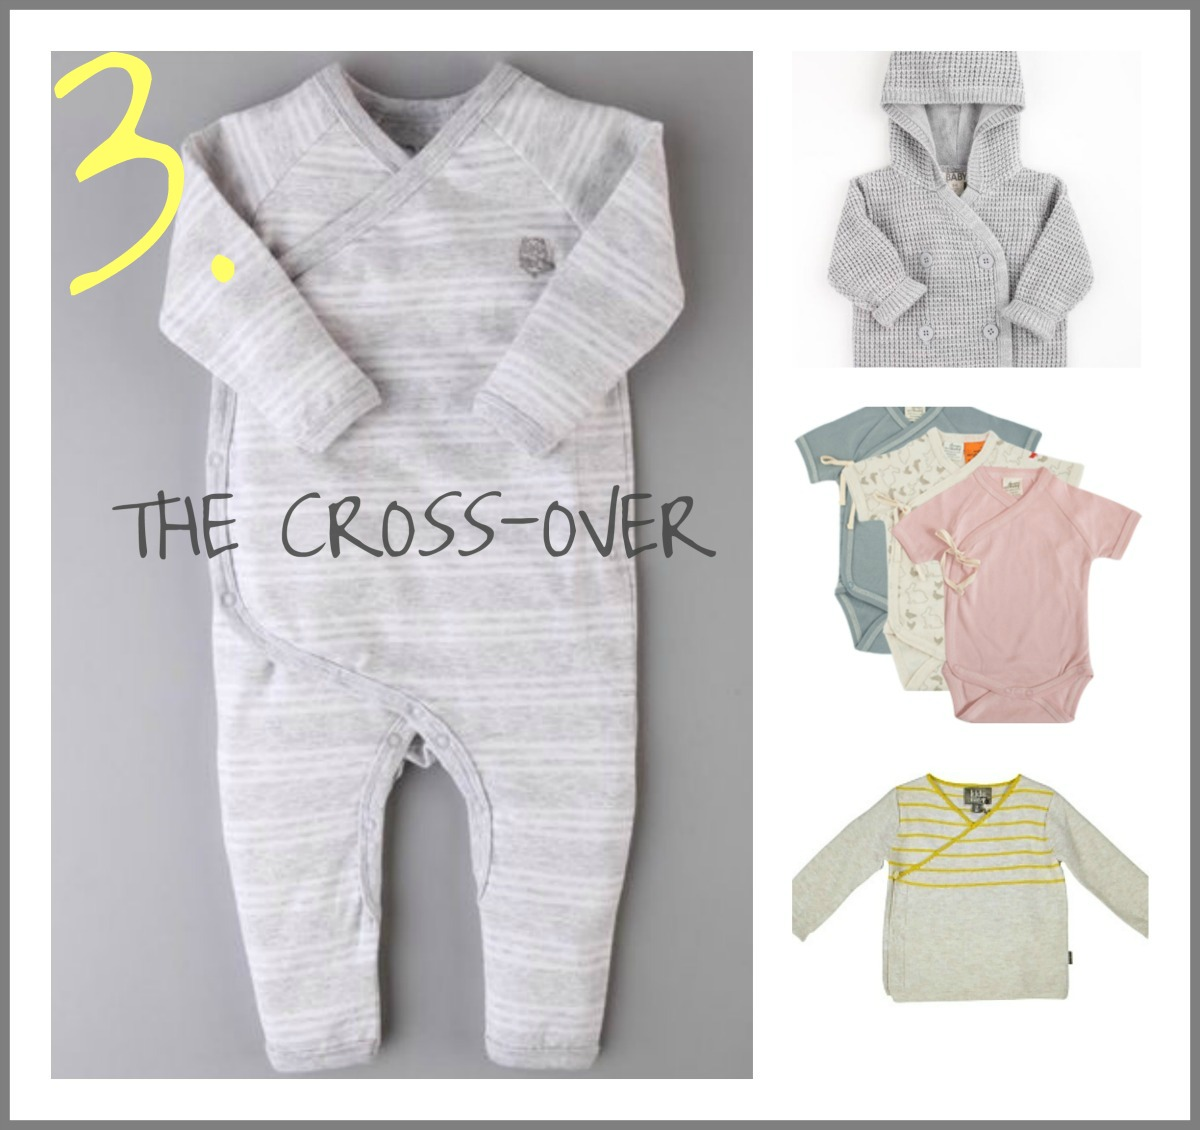 Tip 3 THE CROSS-OVER collage